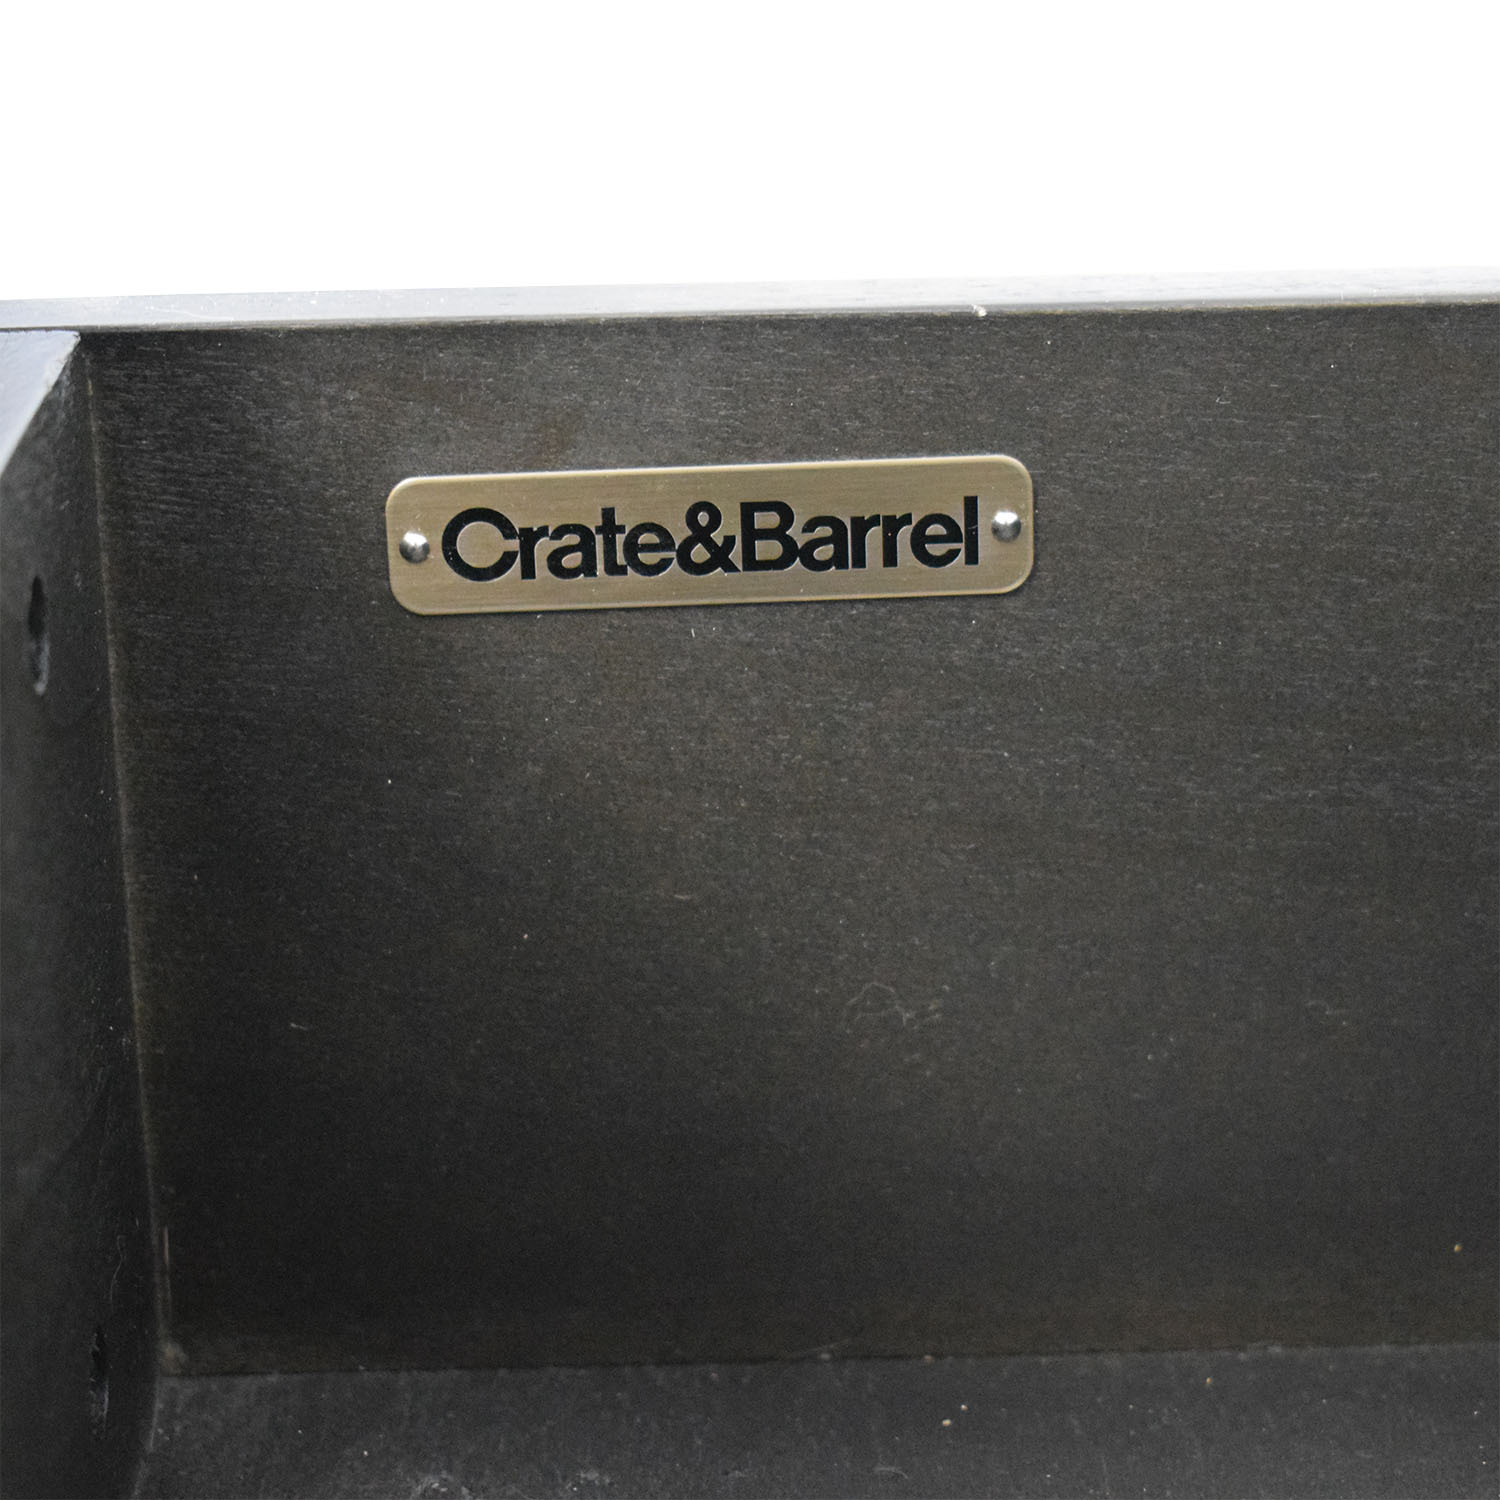 Crate & Barrel Crate & Barrel Mason Shadow 2-Drawer Grey Nightstand second hand